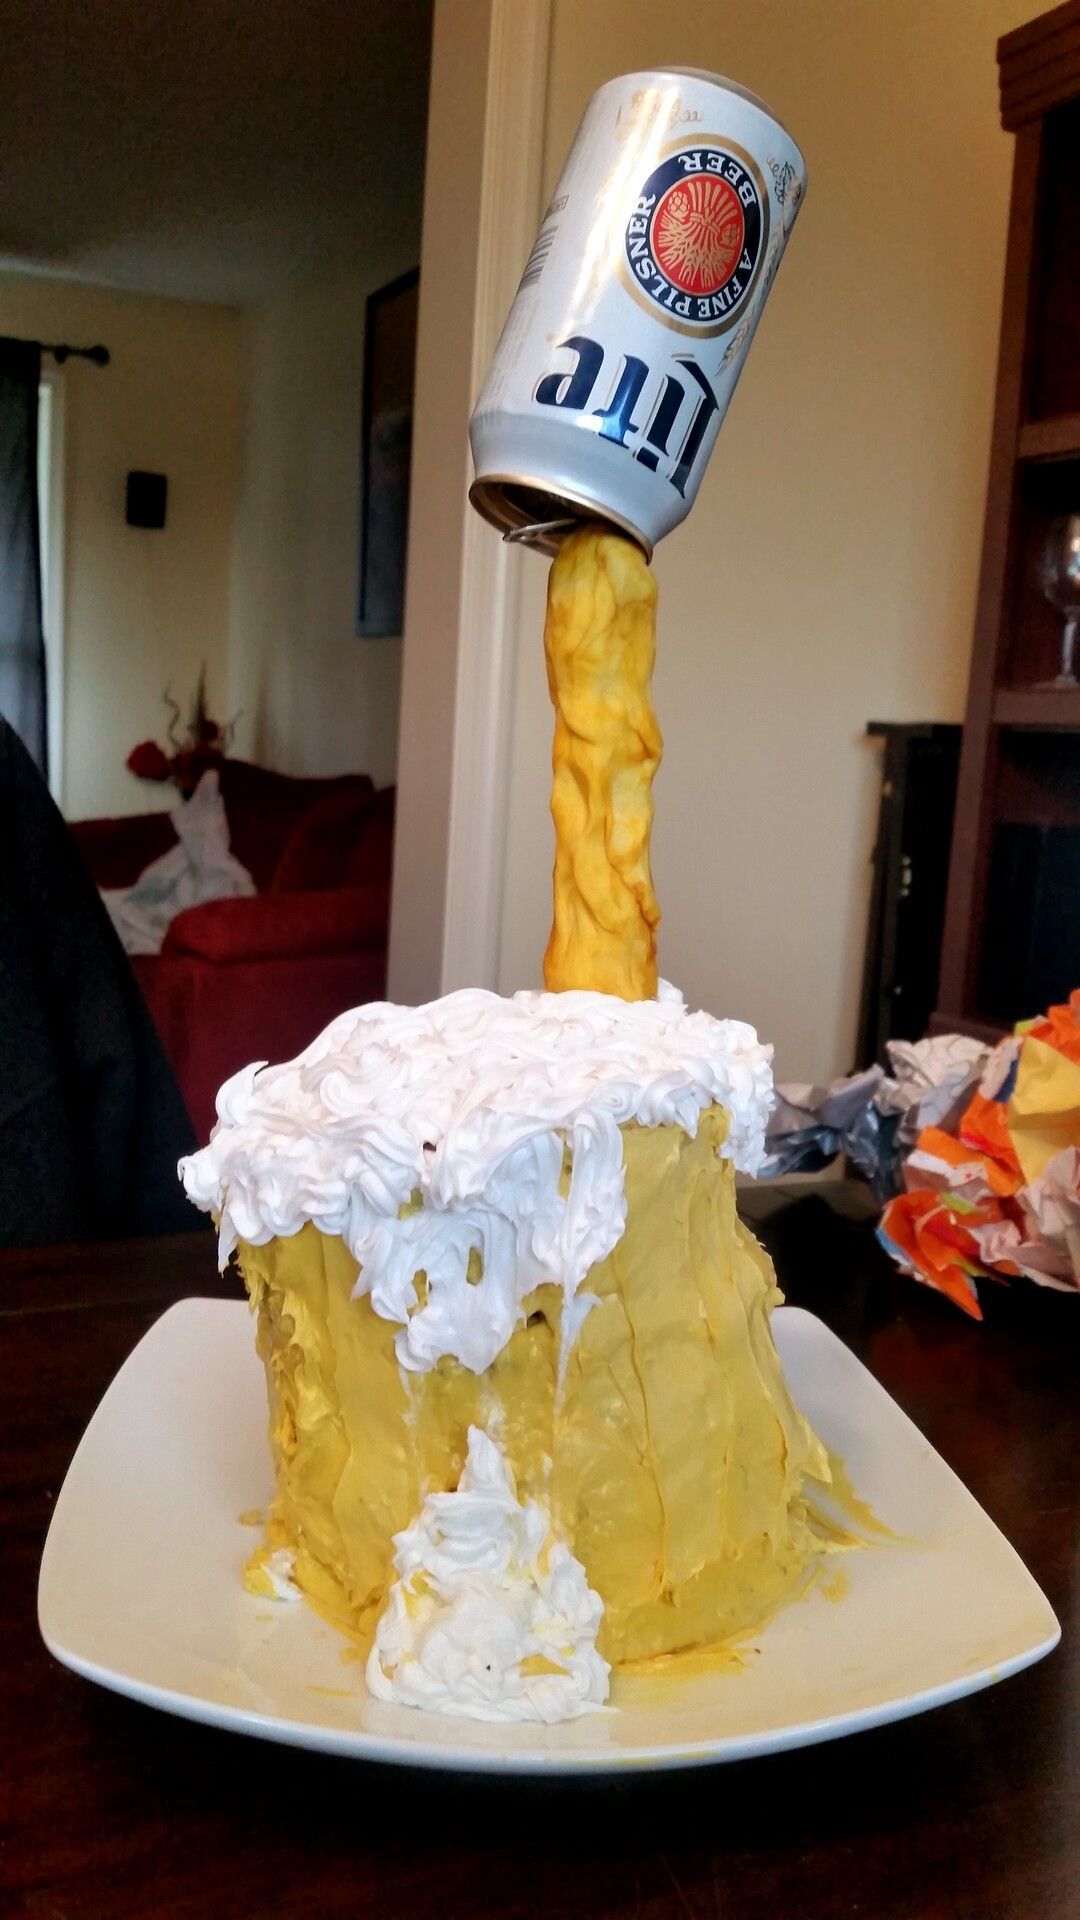 Made a beer pouring into a mug birthday cake for my husbands